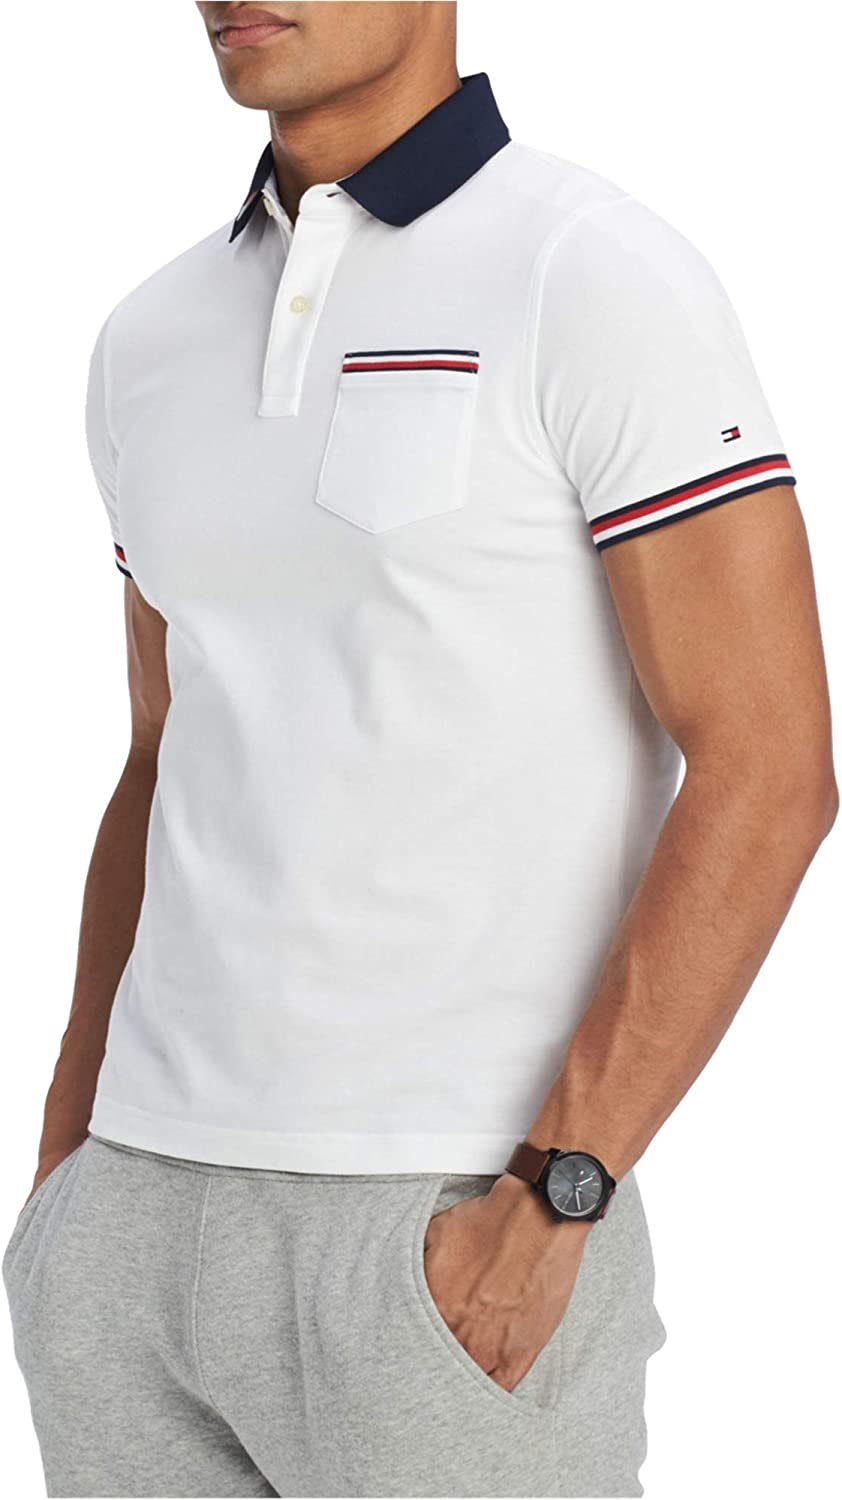 Tommy Hilfiger Mens Homer Shirt Opening large Ranking TOP15 release sale Rugby Polo